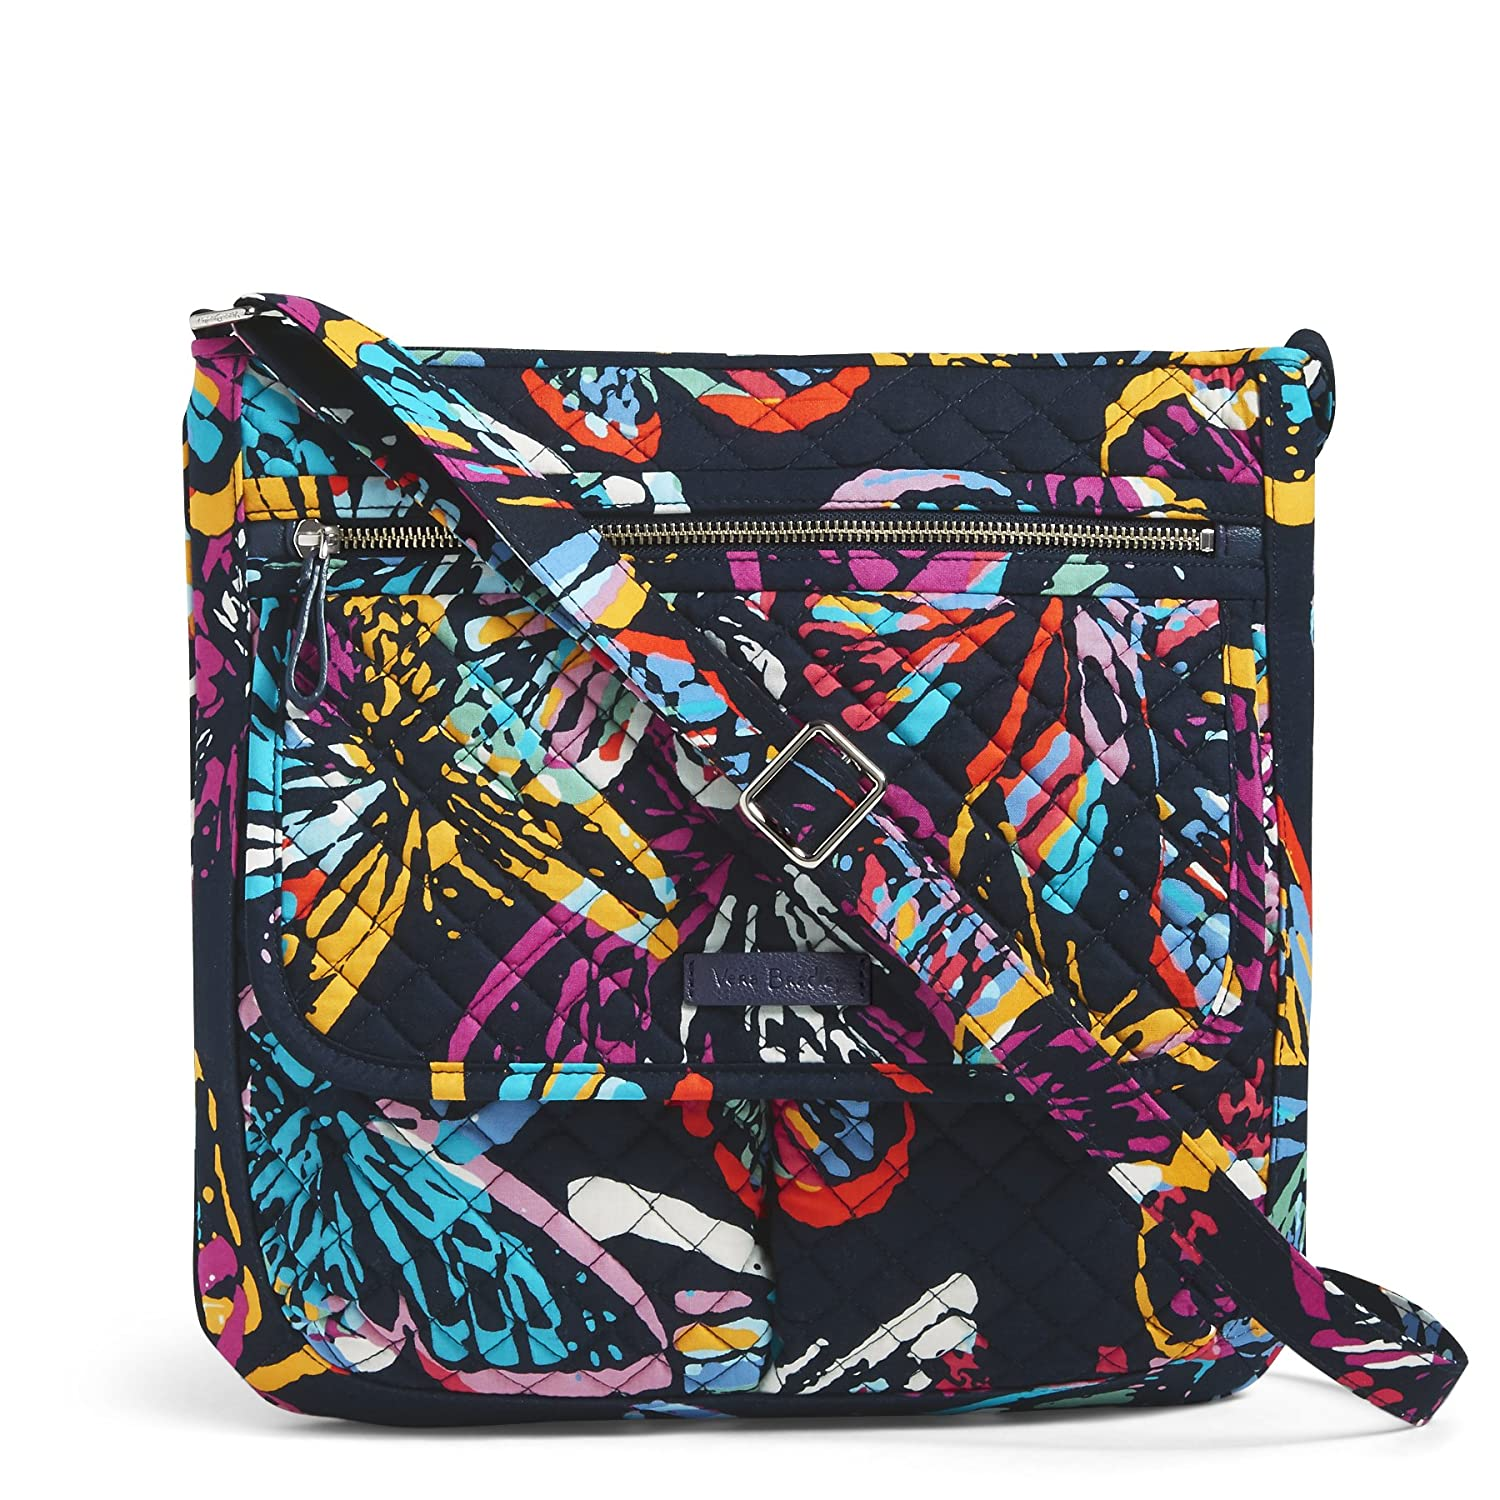 Vera Bradley Iconic Mailbag, Signature Cotton Butterfly Flutter 22169-I81